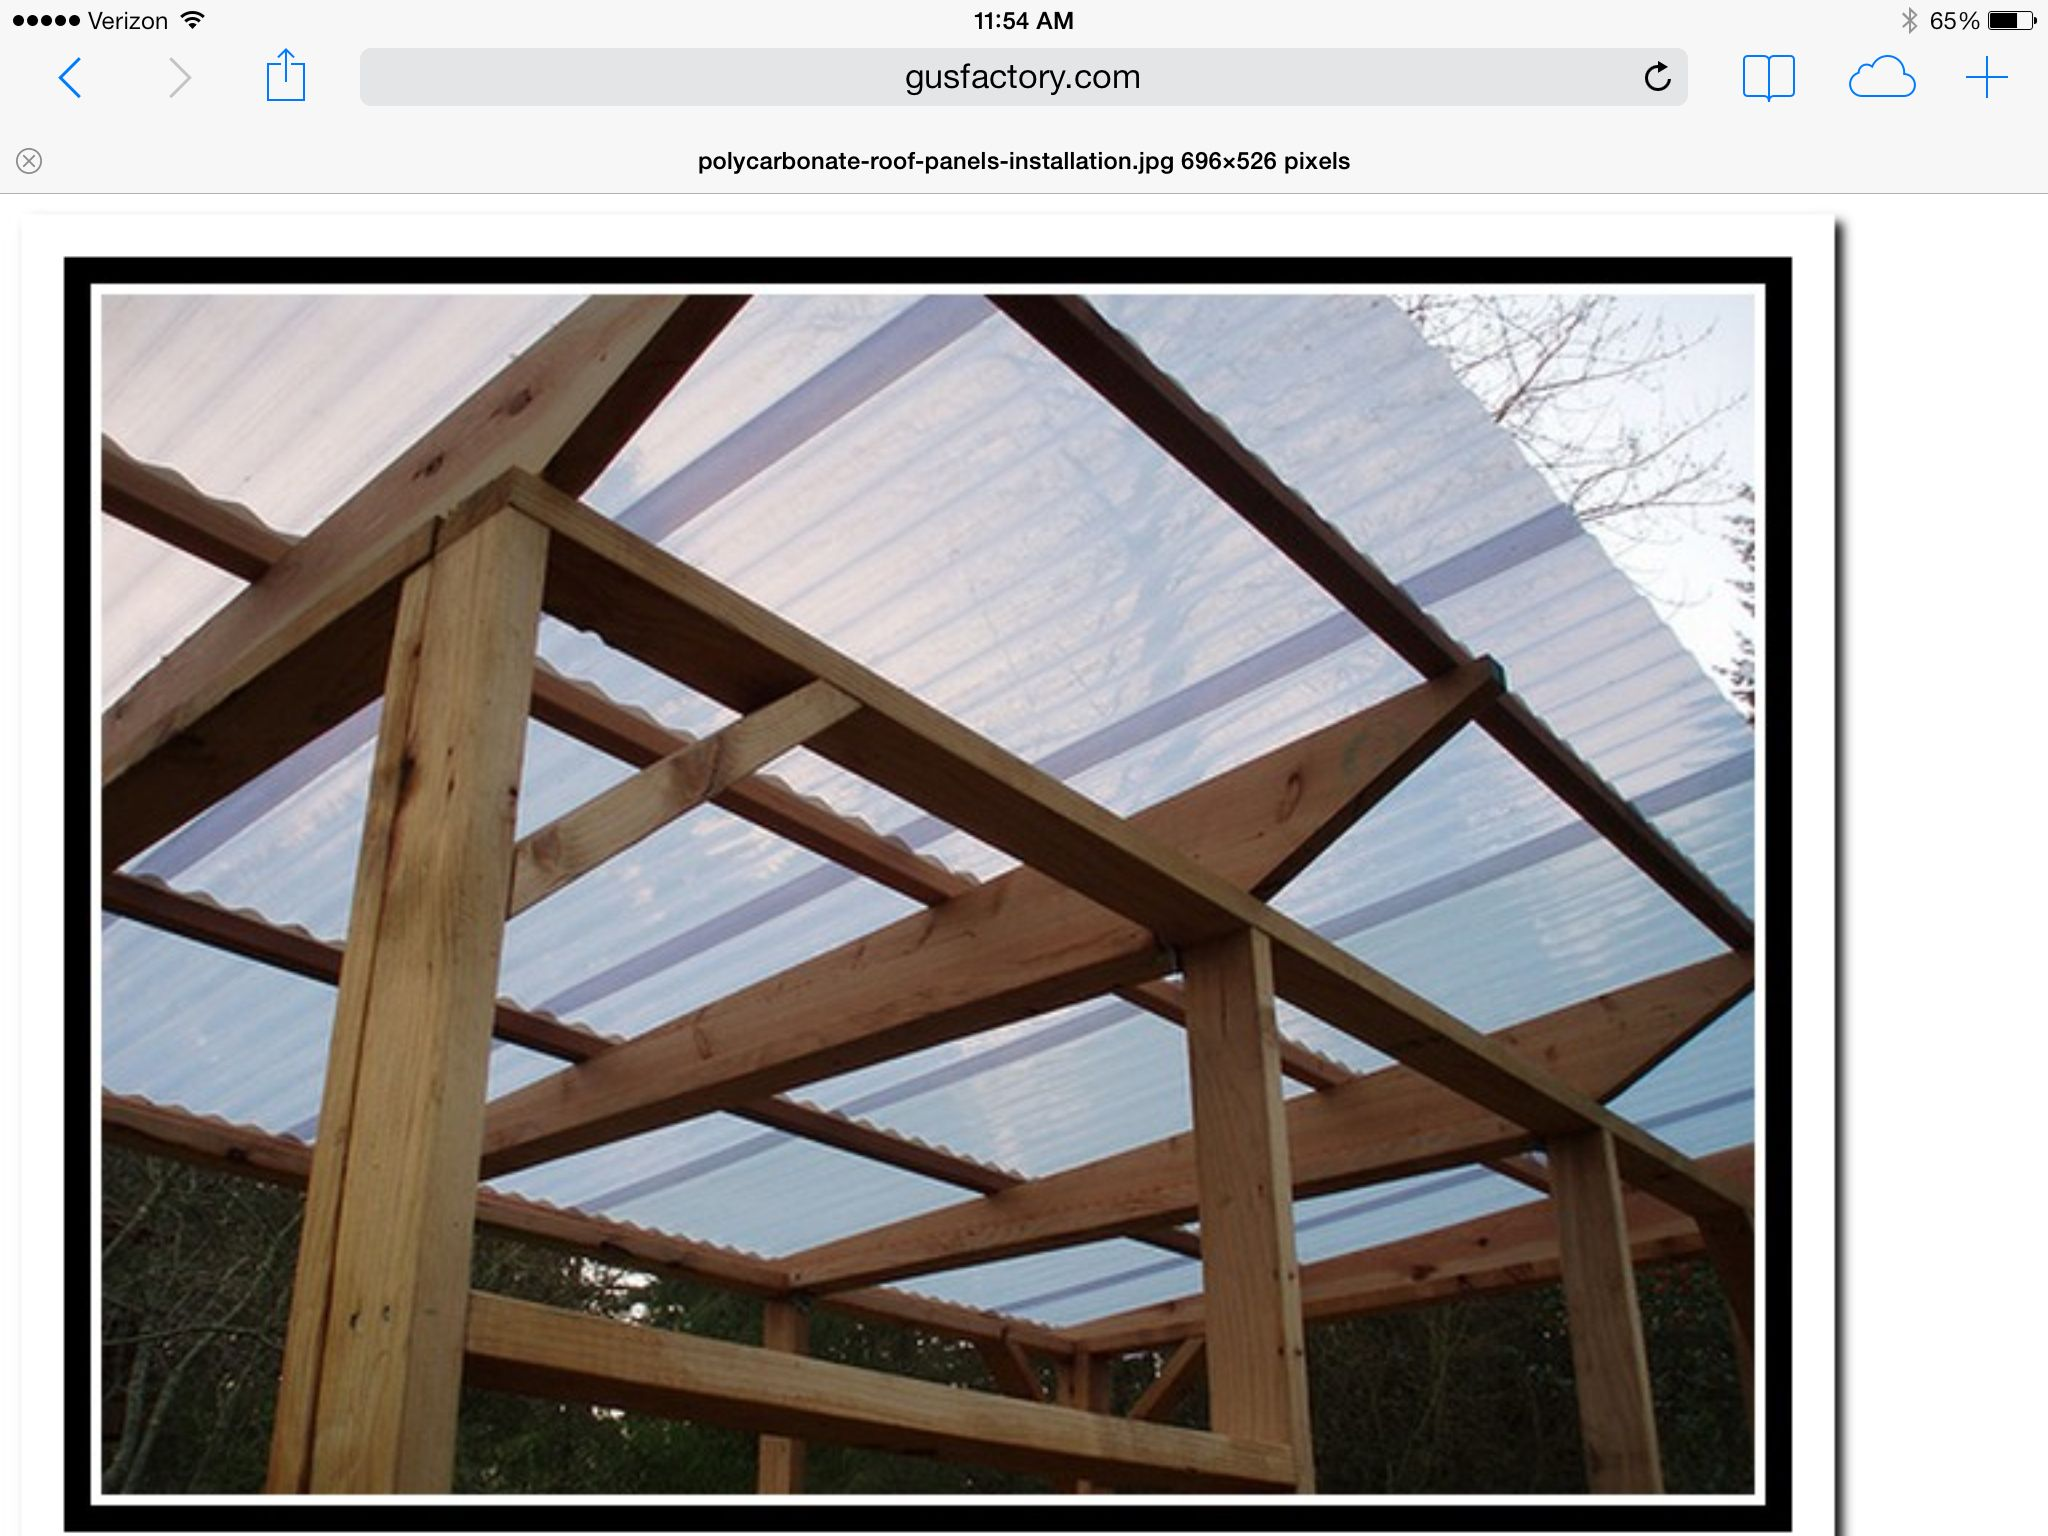 Polycarbonate roof panels on pergola the pergola project pinterest poly - Pergola en polycarbonate ...